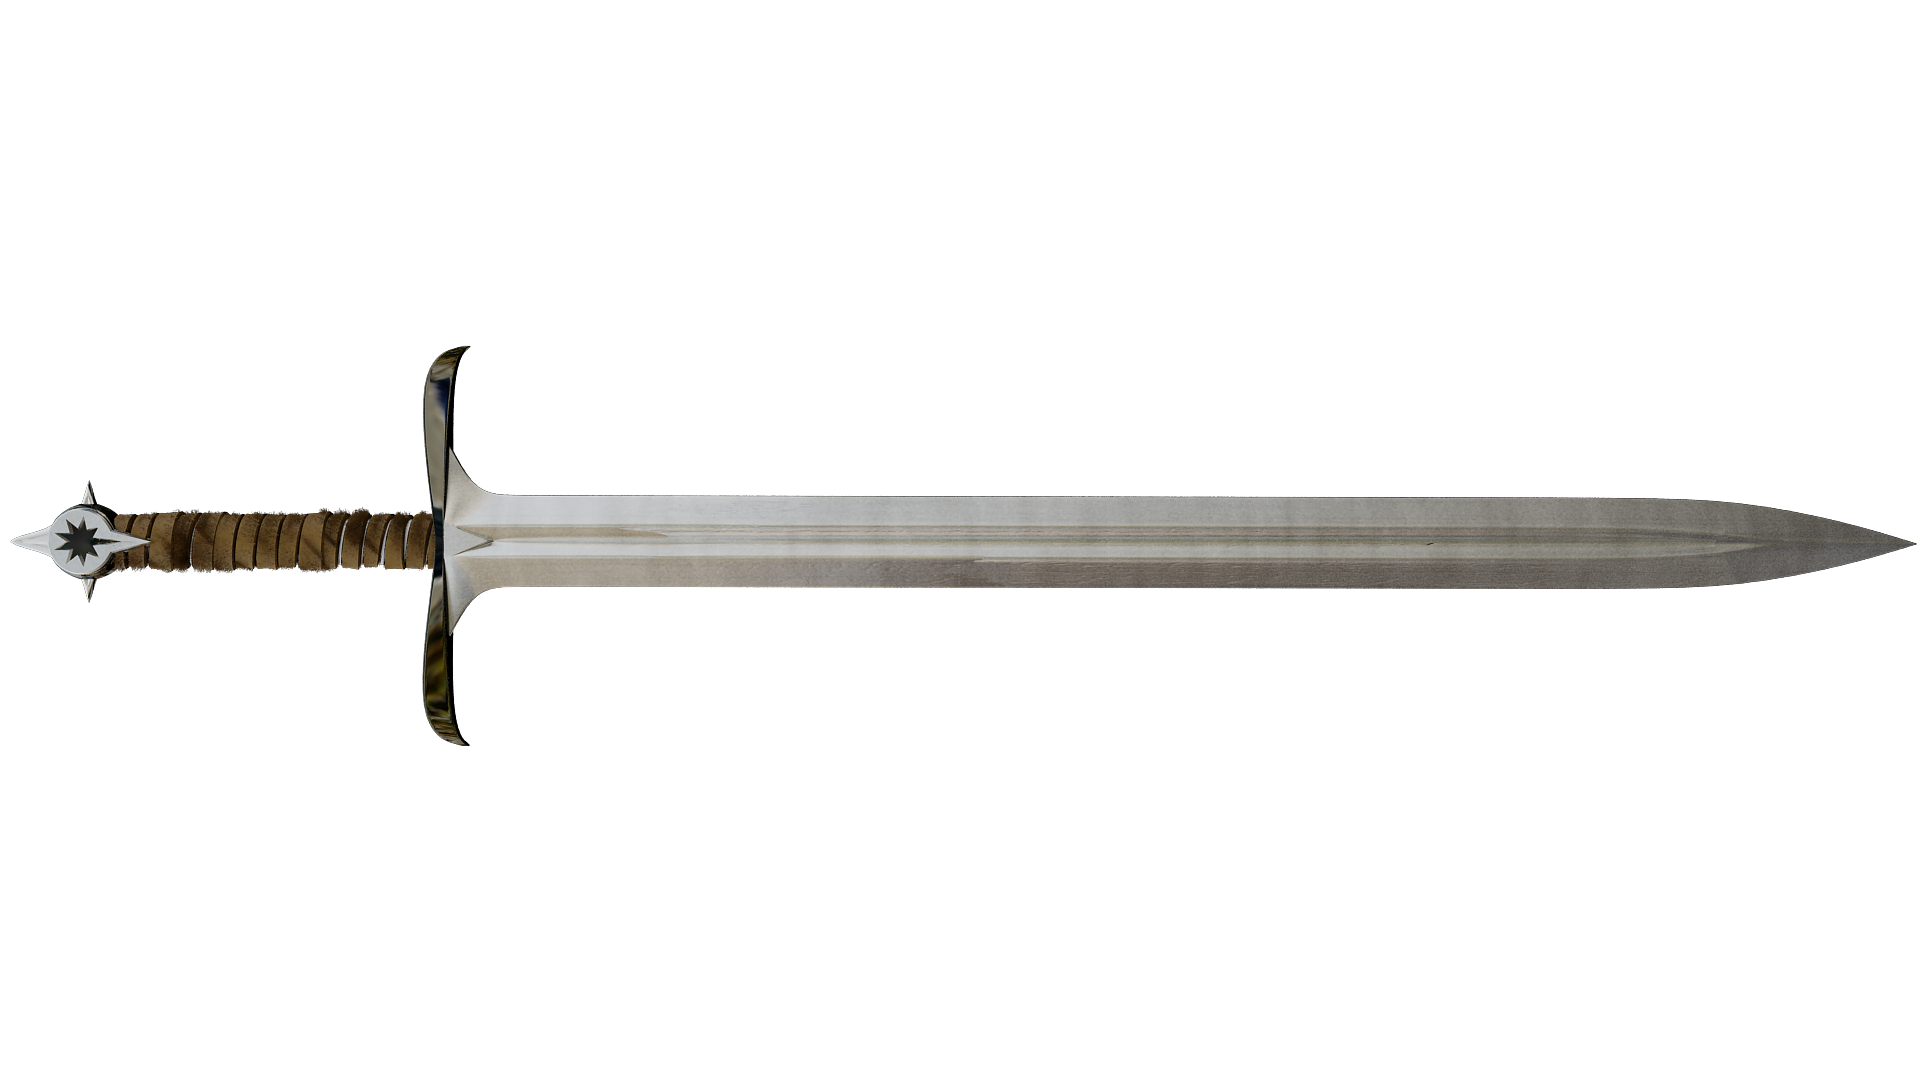 L'échoppe à Top-site Sword-hd-png-sword-png-image-1920